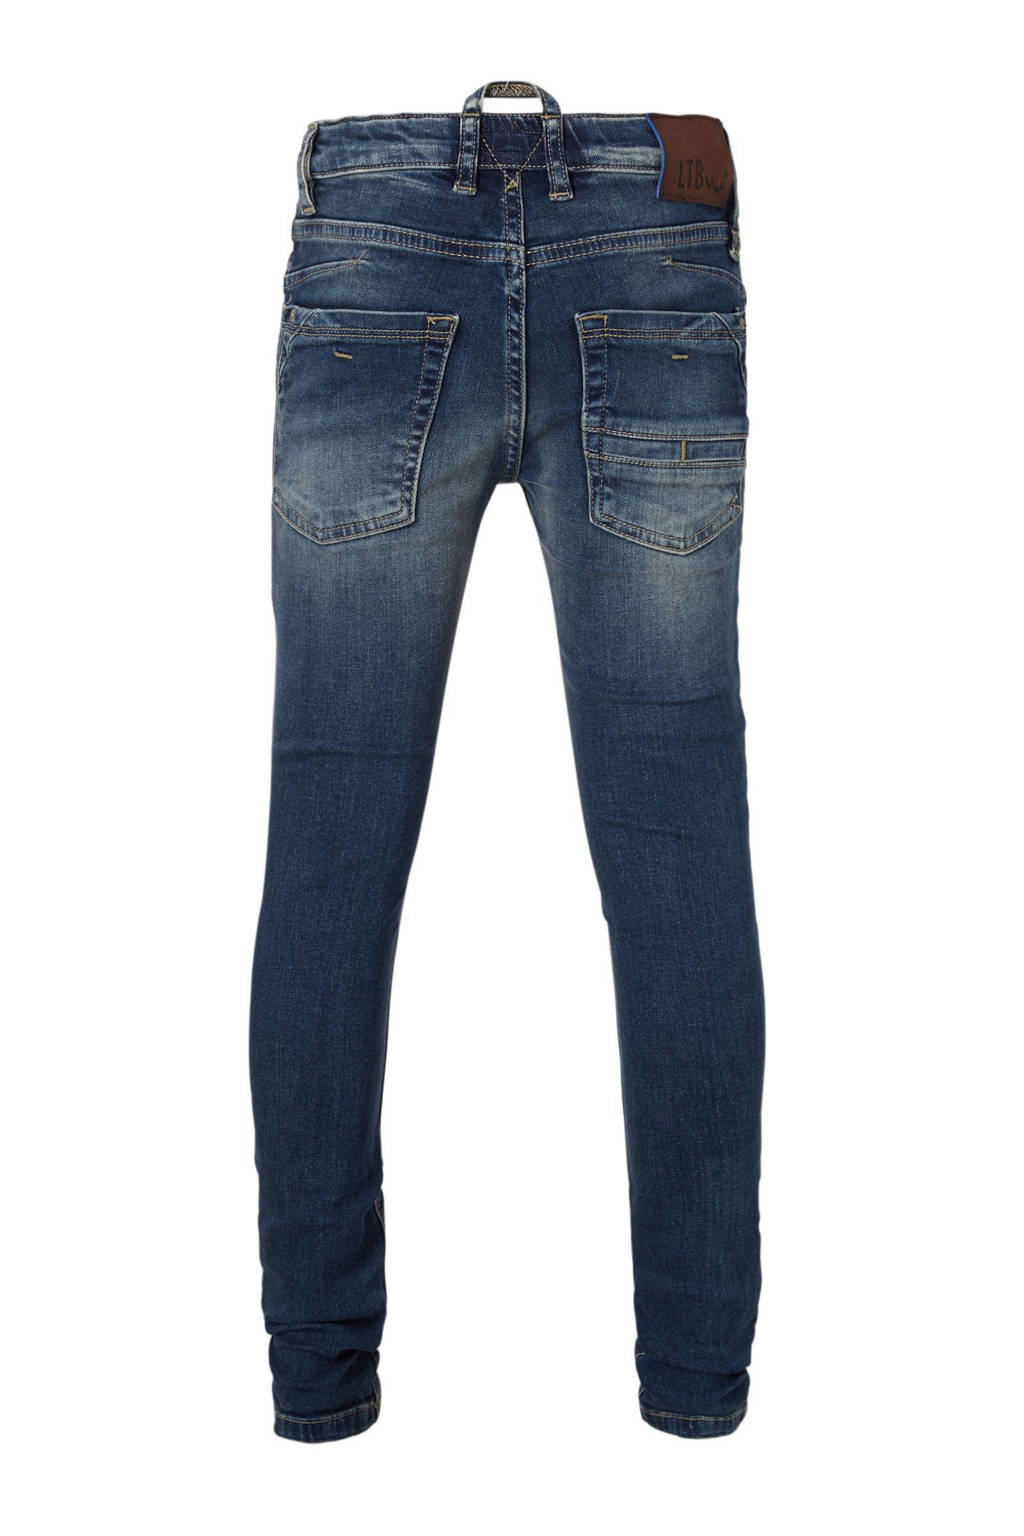 LTB Cayle skinny fit jeans, Stonewashed